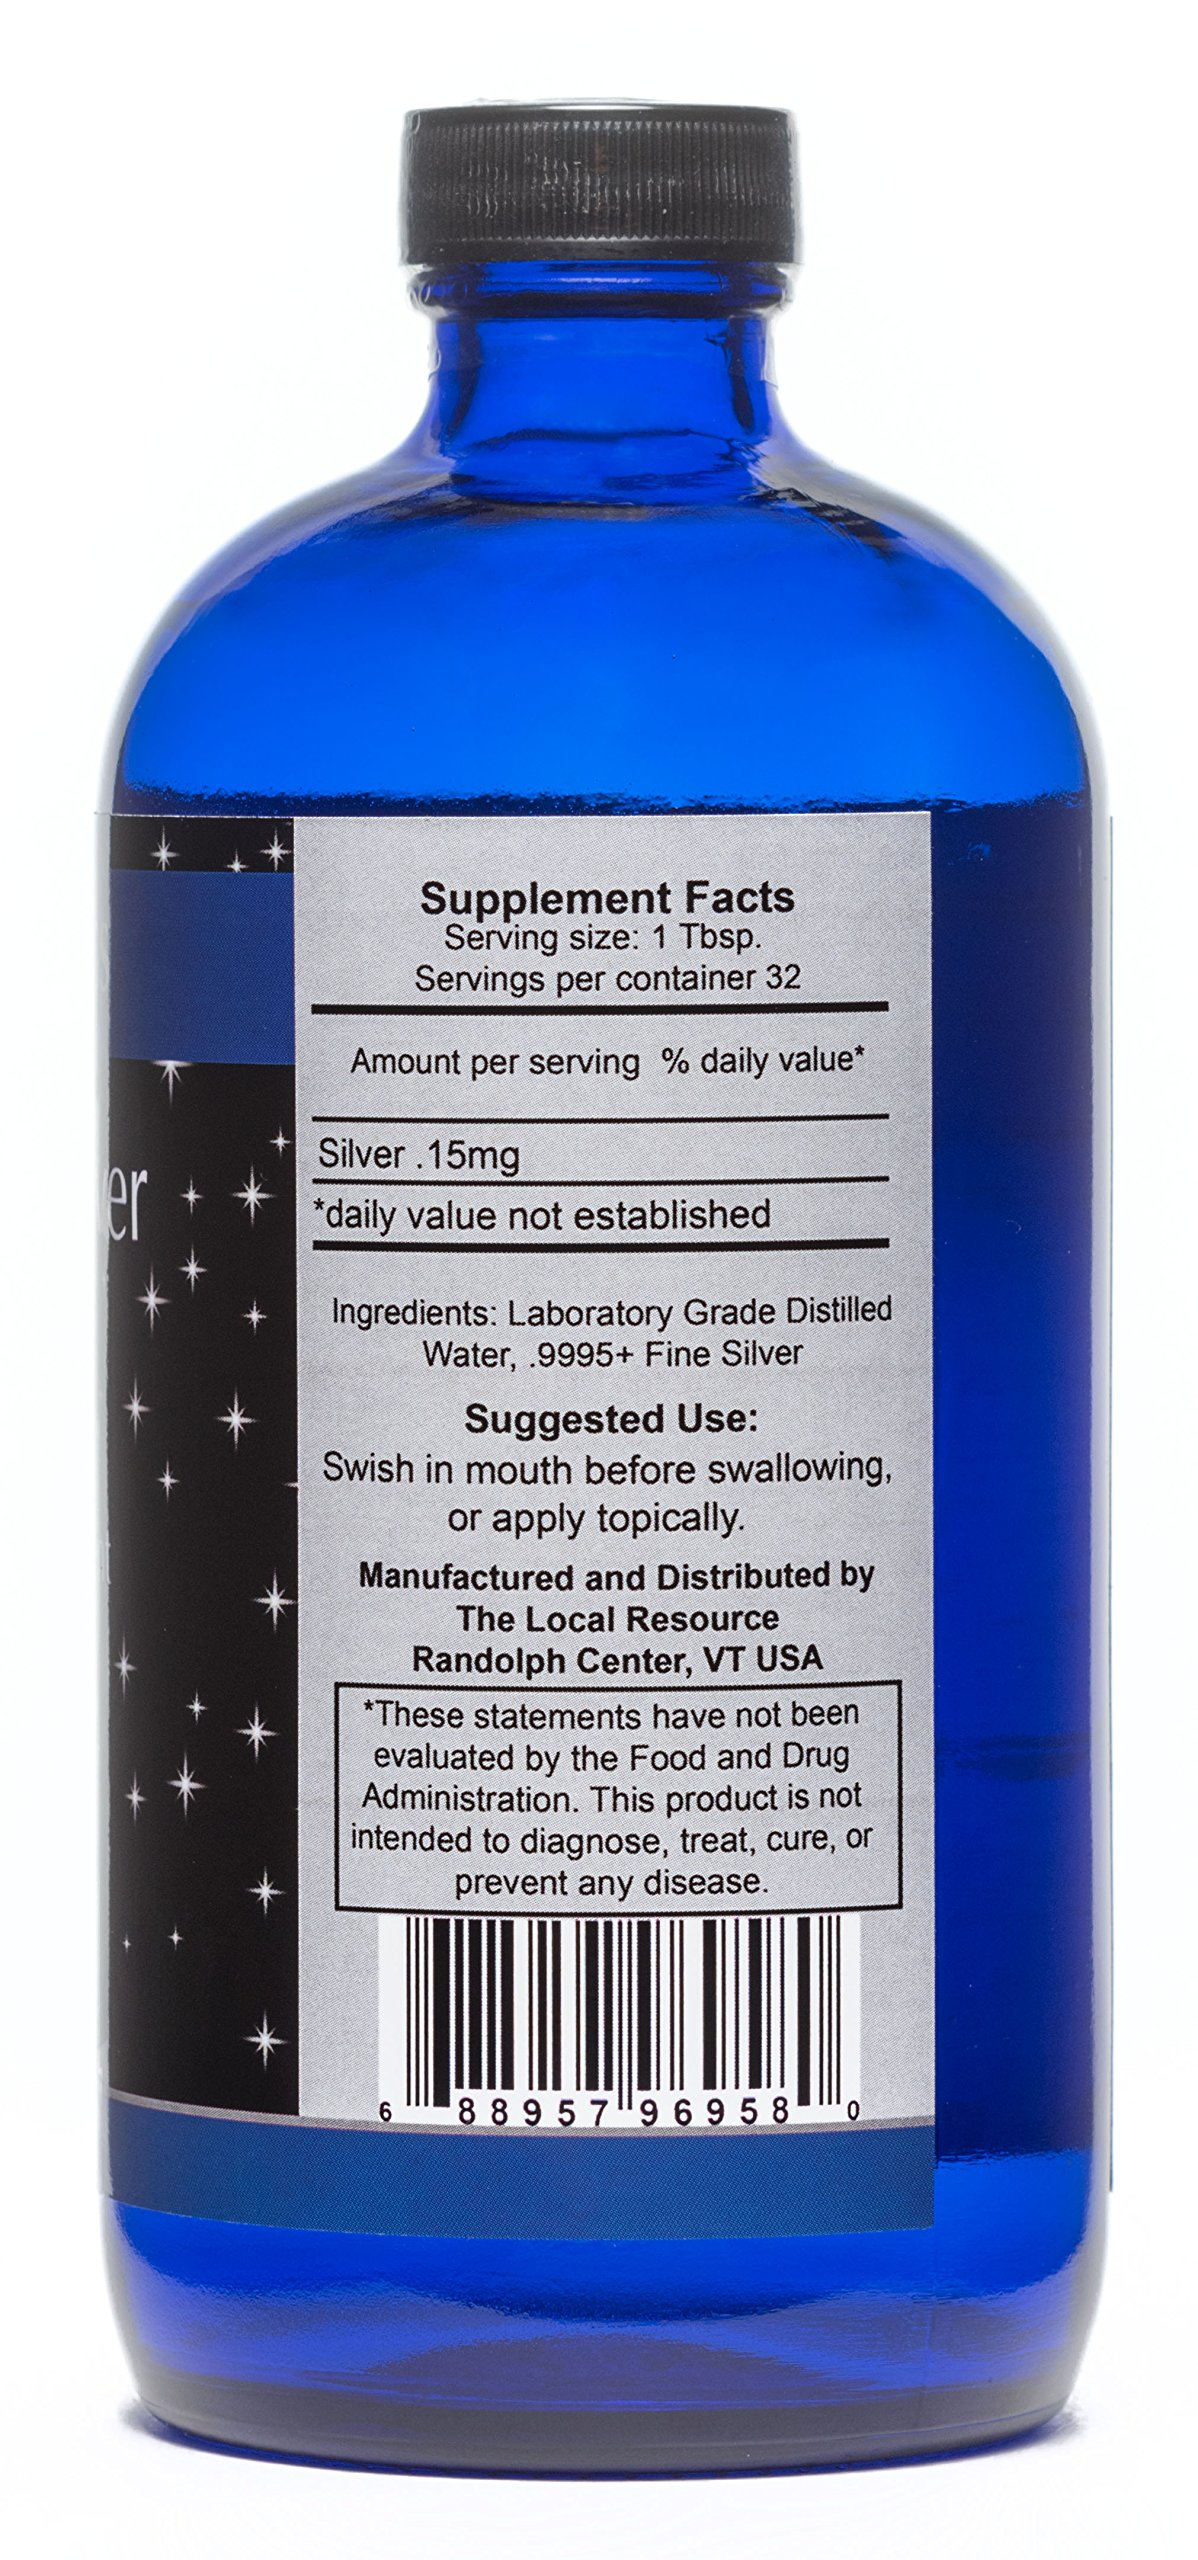 Silver Linings Colloidal Silver Hydrosol, 10 PPM, A Powerful Natural Antibiotic, and Preventative Measure Against Infection, Immune Support, Safe for Adults, Kids, Pets, and Plants, 16 oz by Silver Linings (Image #2)